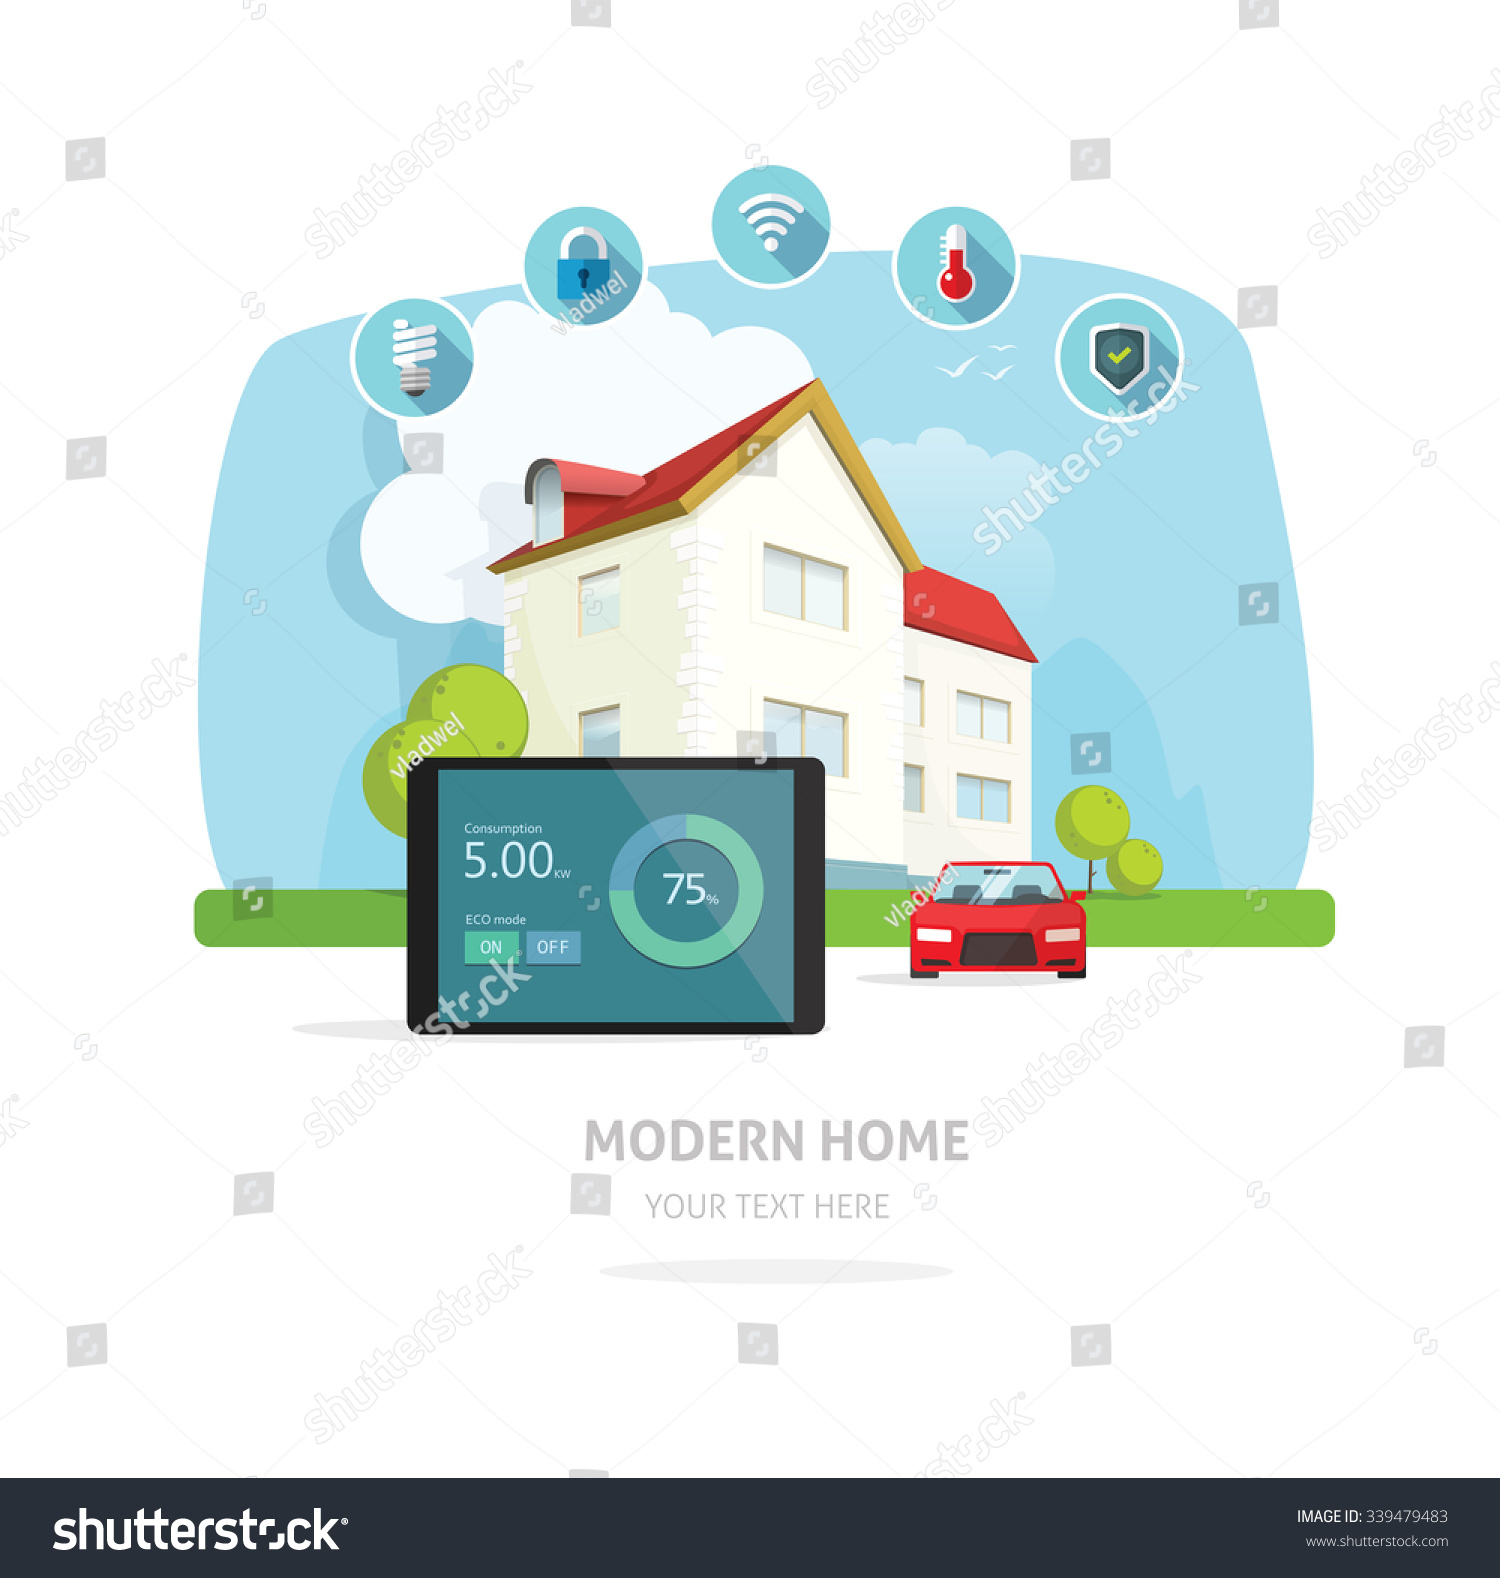 Smart Home Flat Style Modern House Design Service Vector